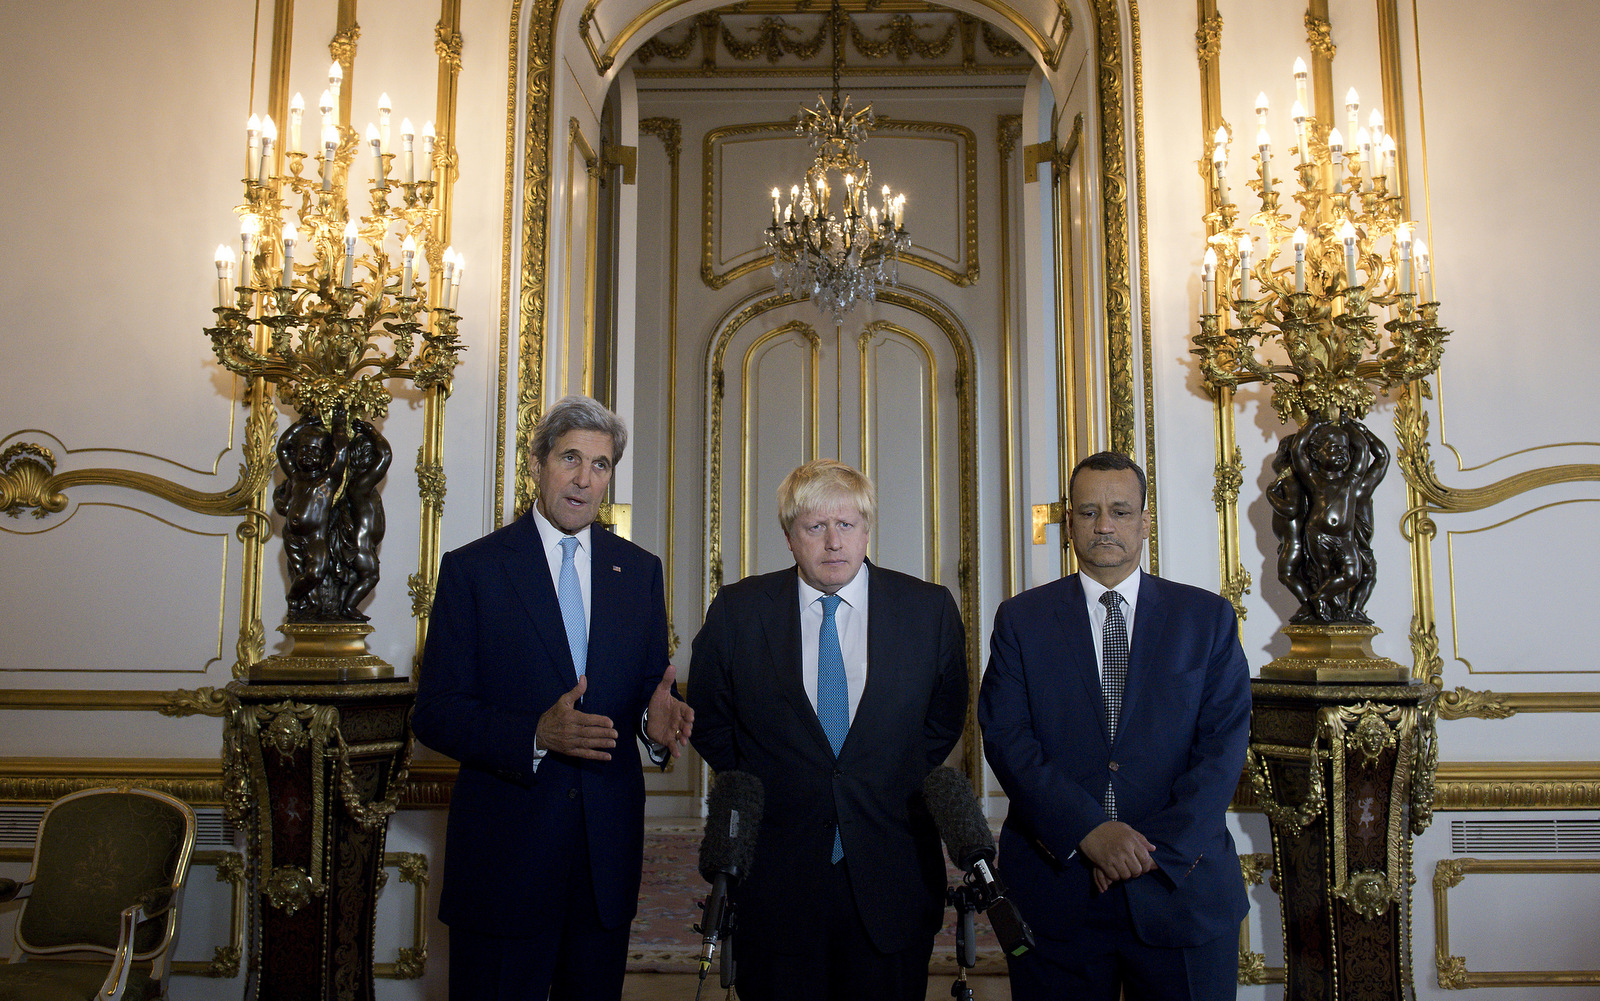 Making a joint statement on Yemen, with left - right, US Secretary of State John Kerry, British Foreign Secretary Boris Johnson and UN Special Envoy for Yemen Ismail Ould Cheikh Ahmed, at Lancaster House in London Sunday Oct. 16, 2016. (Justin Tallis/AP)